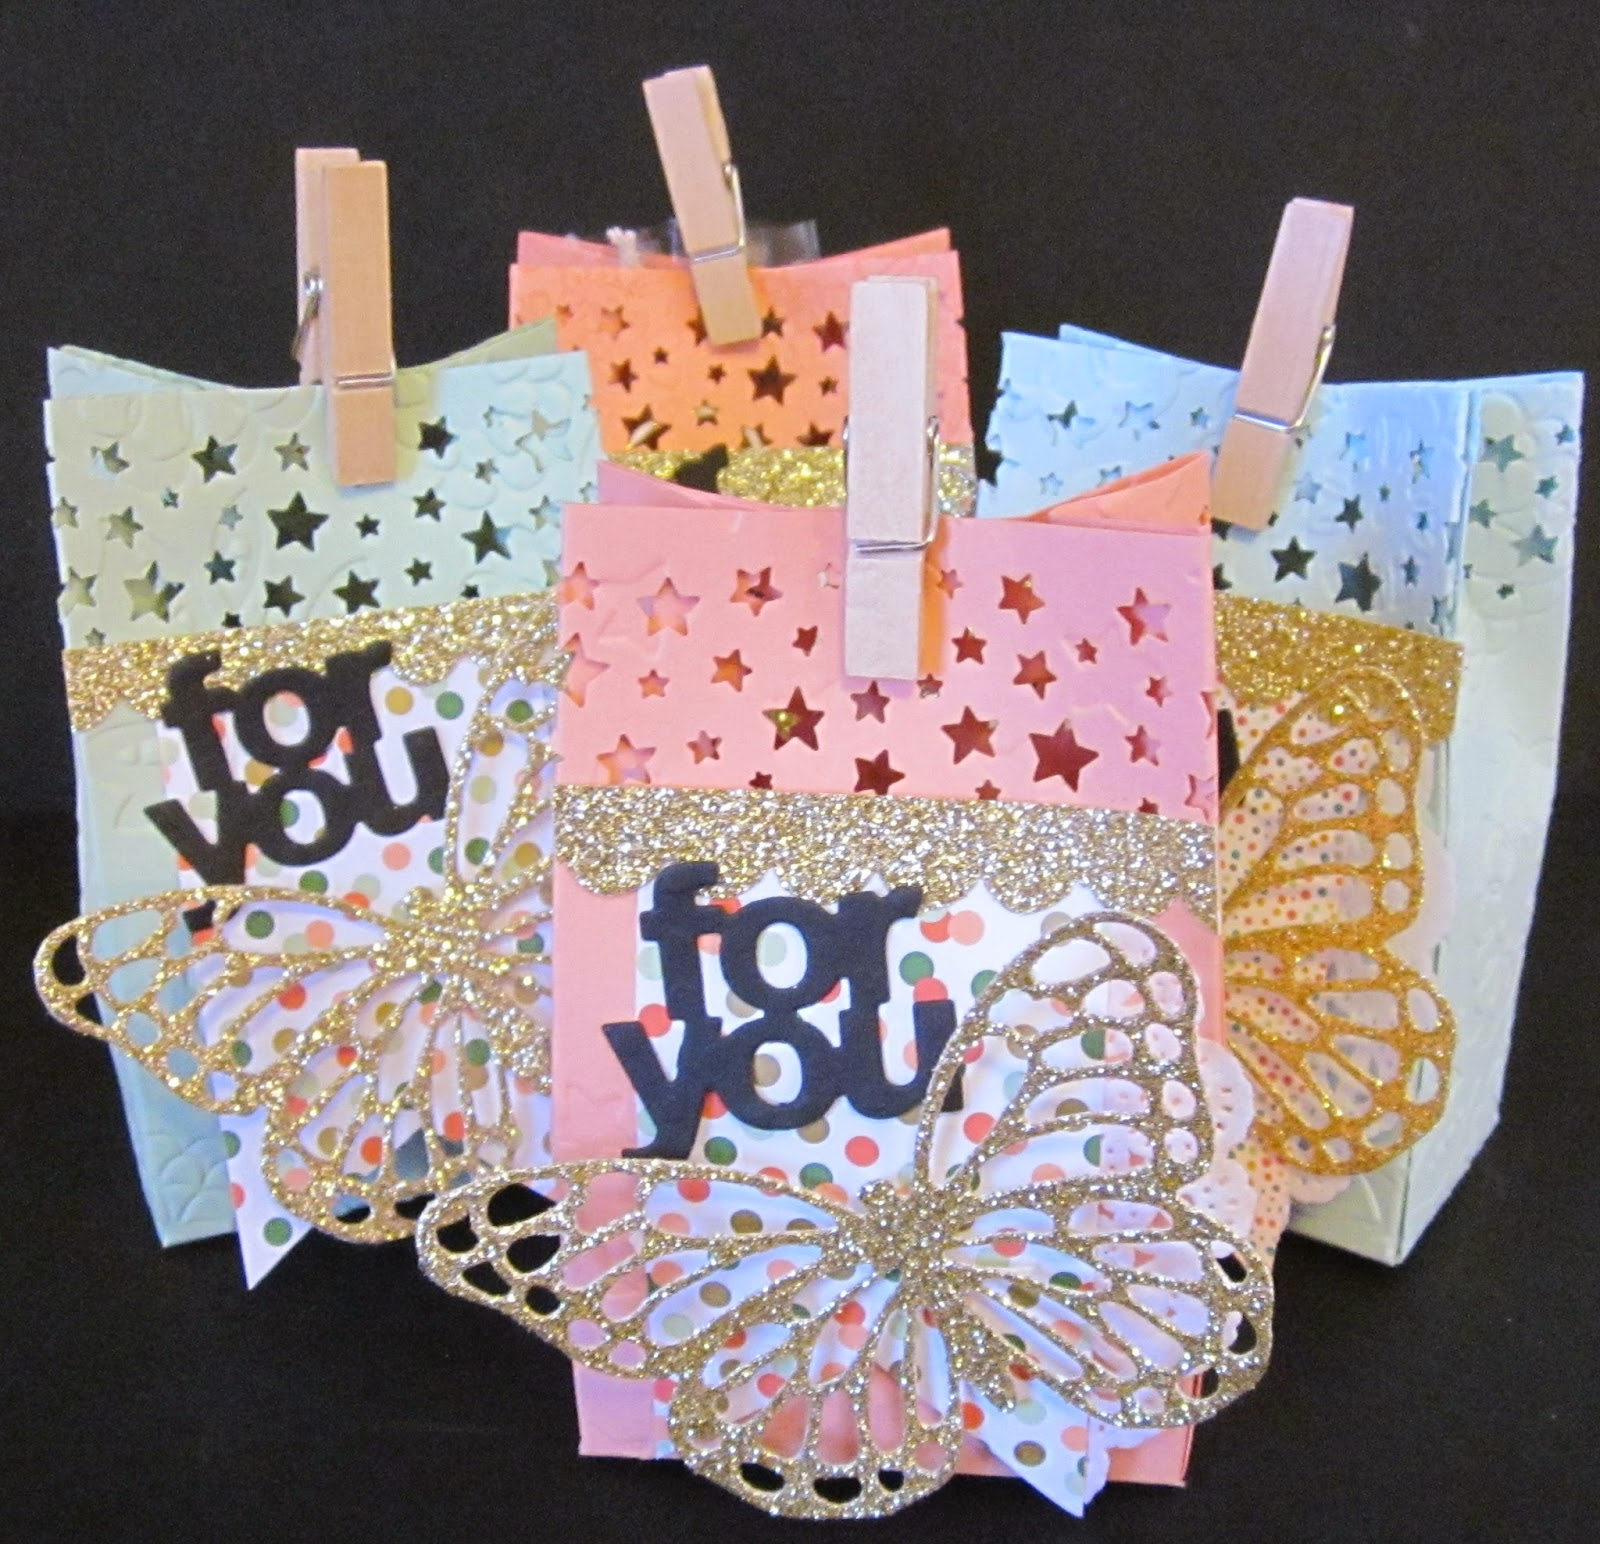 Stampin' Up! Treat bags Confetti Stars Border Punch Thinlit Dies, gold glimmer paper, hand made, cards, treats